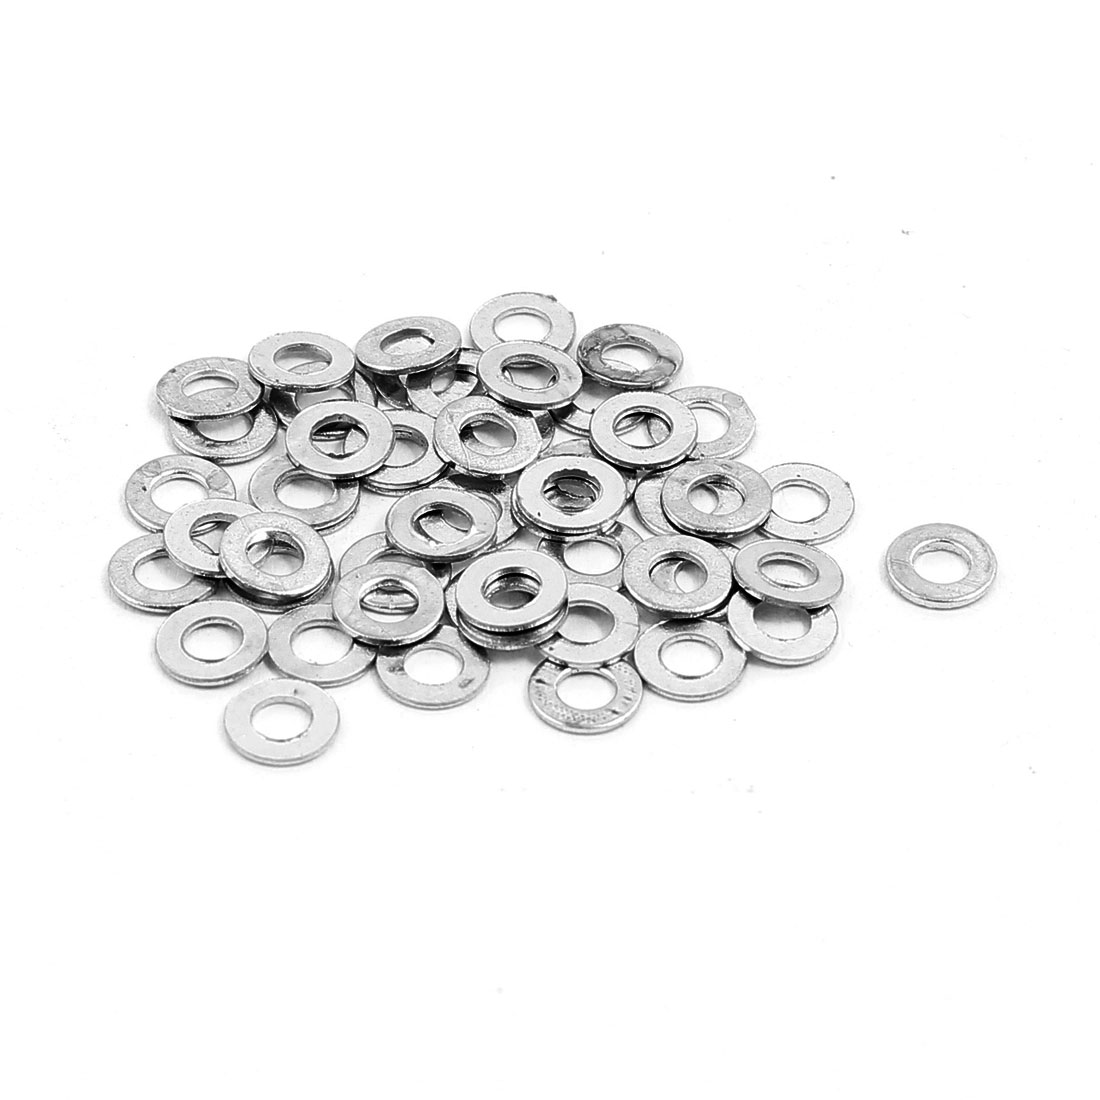 2.5x5mm Stainless Steel Flat Washer Plain Spacer Gasket Fastener for Screw Bolt 50pcs